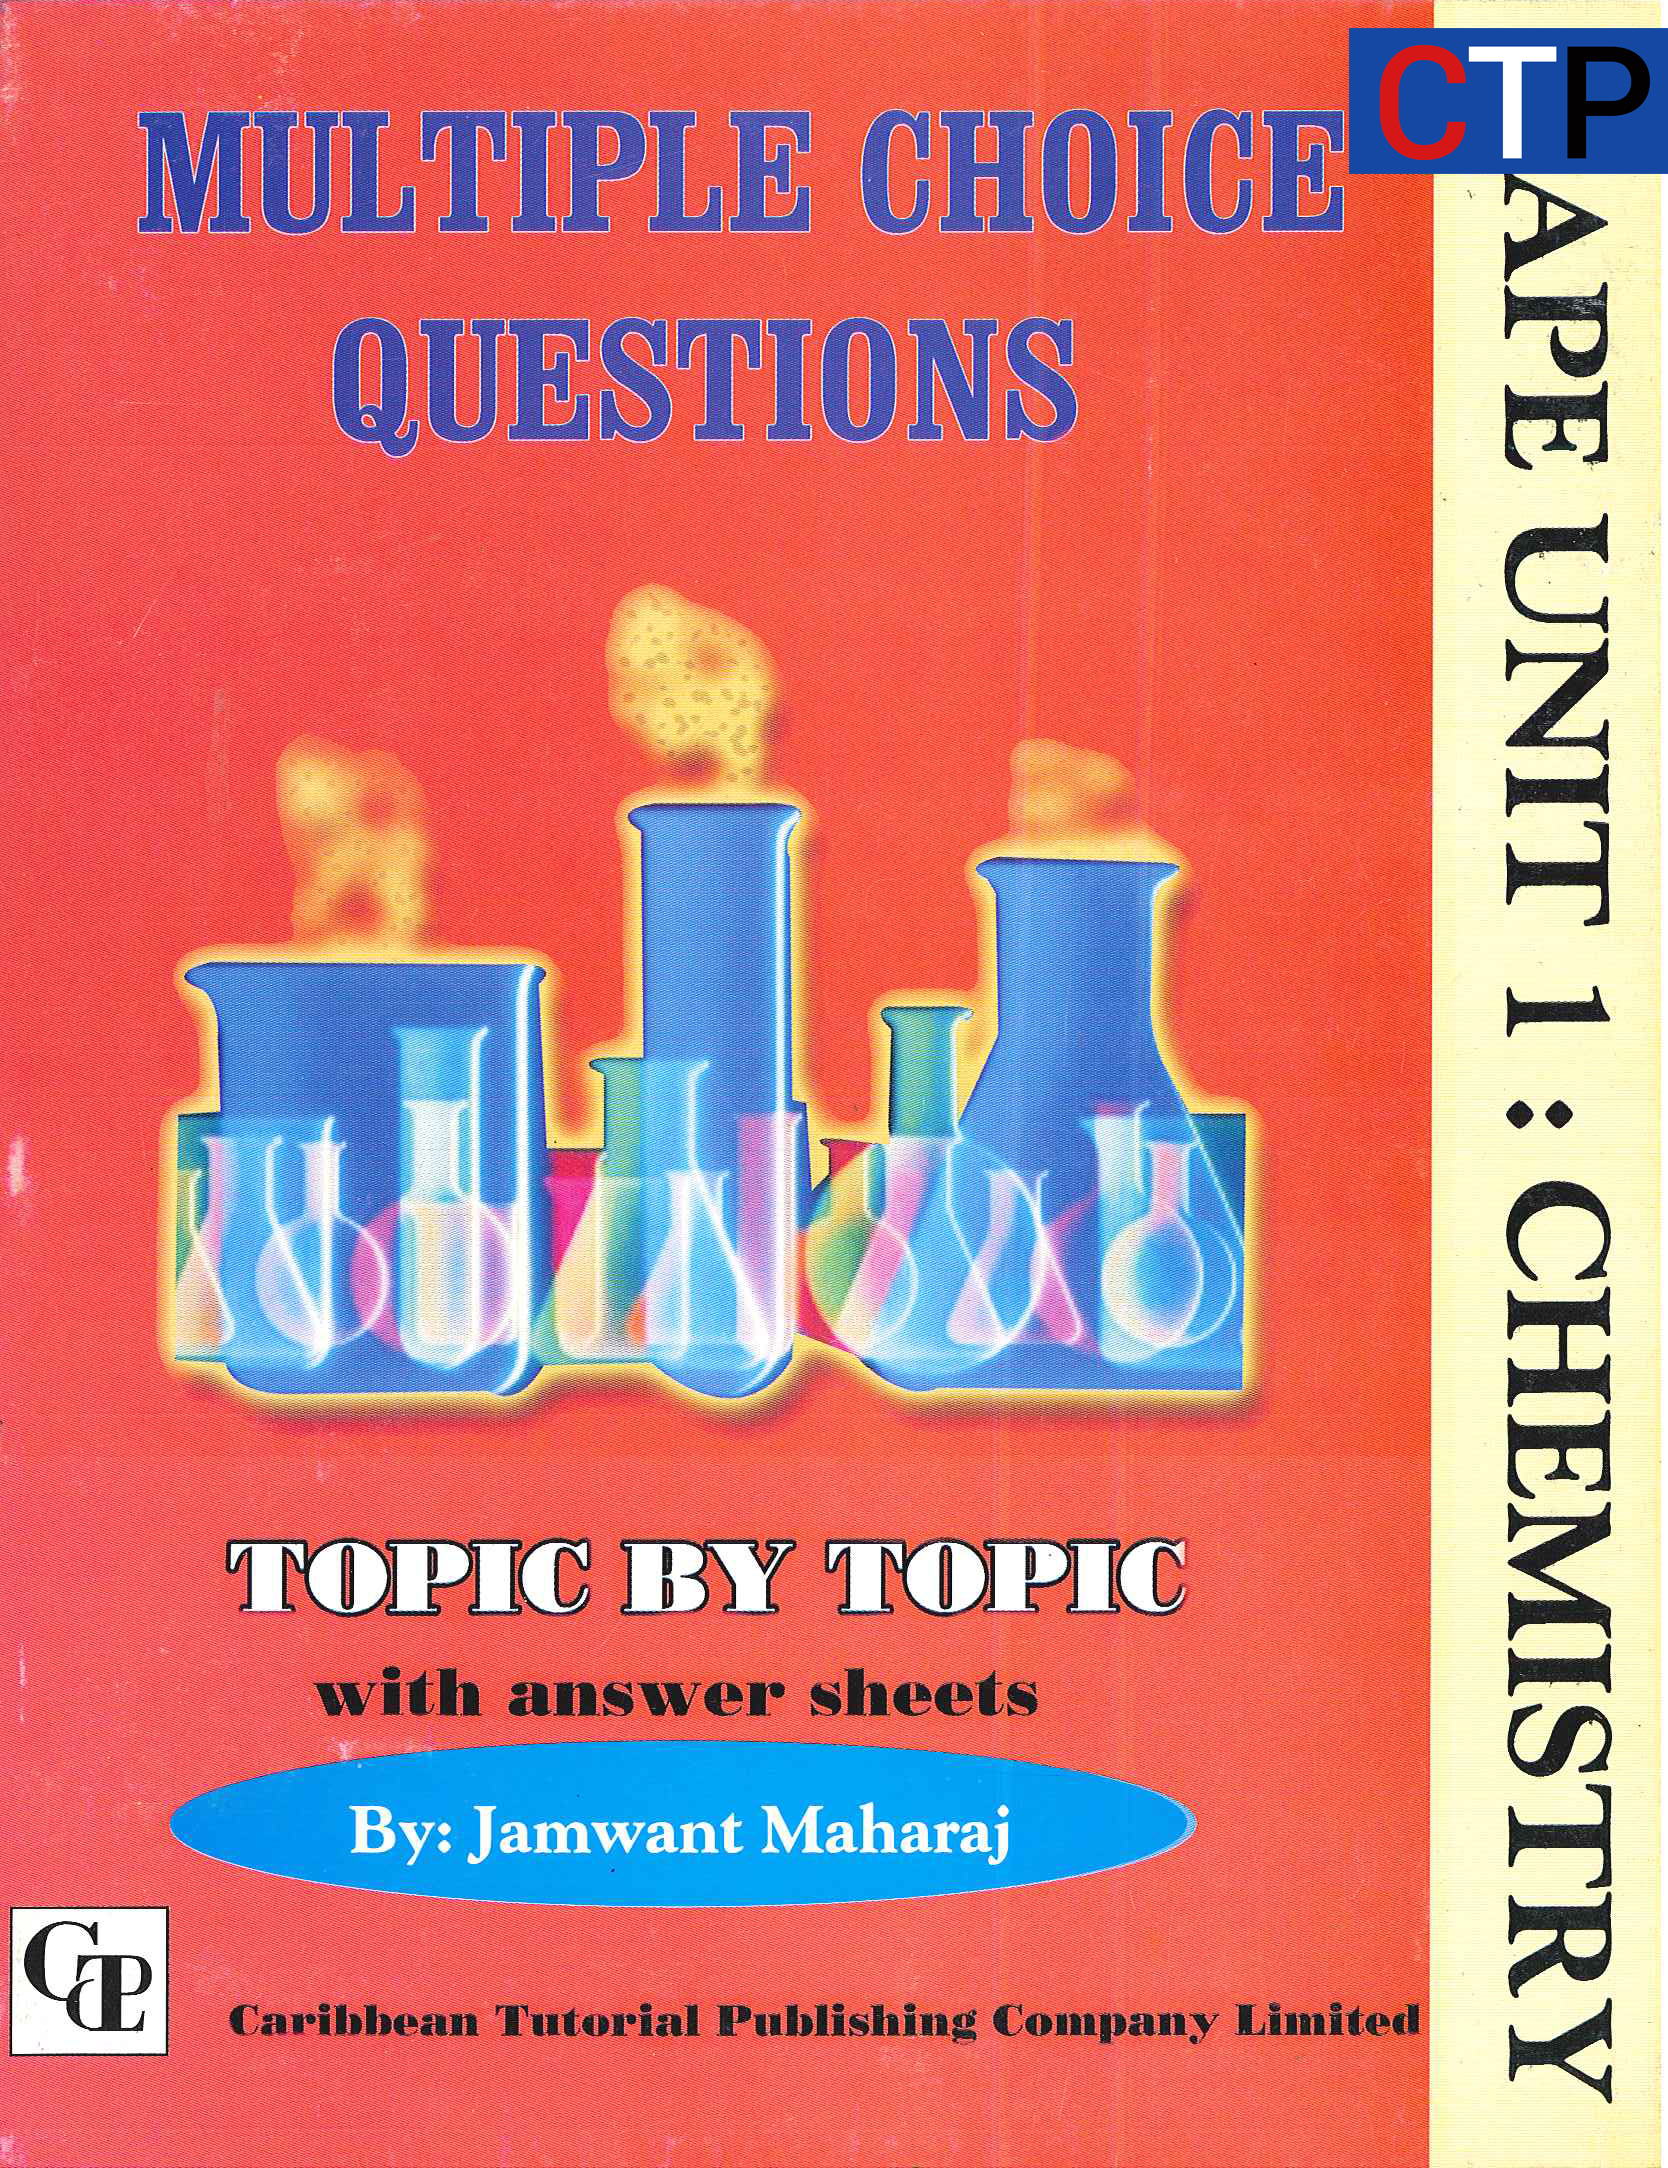 CAPE Unit 1 Chemistry Multiple Choice Questions - Caribbean Tutorial